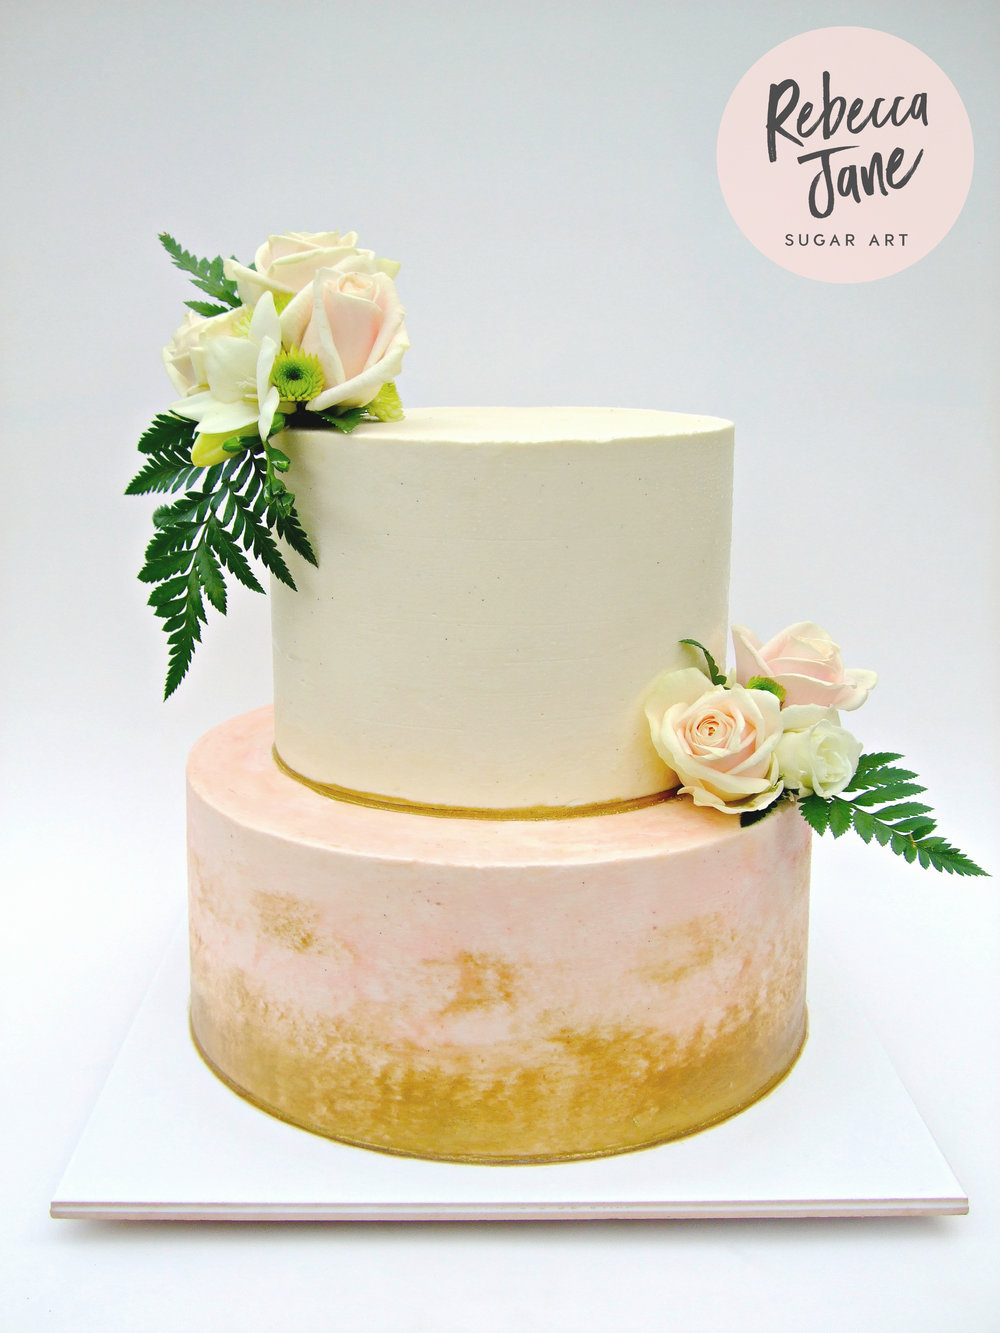 Rebecca Jane Sugar Art - floral, white and blush buttercream wedding cake